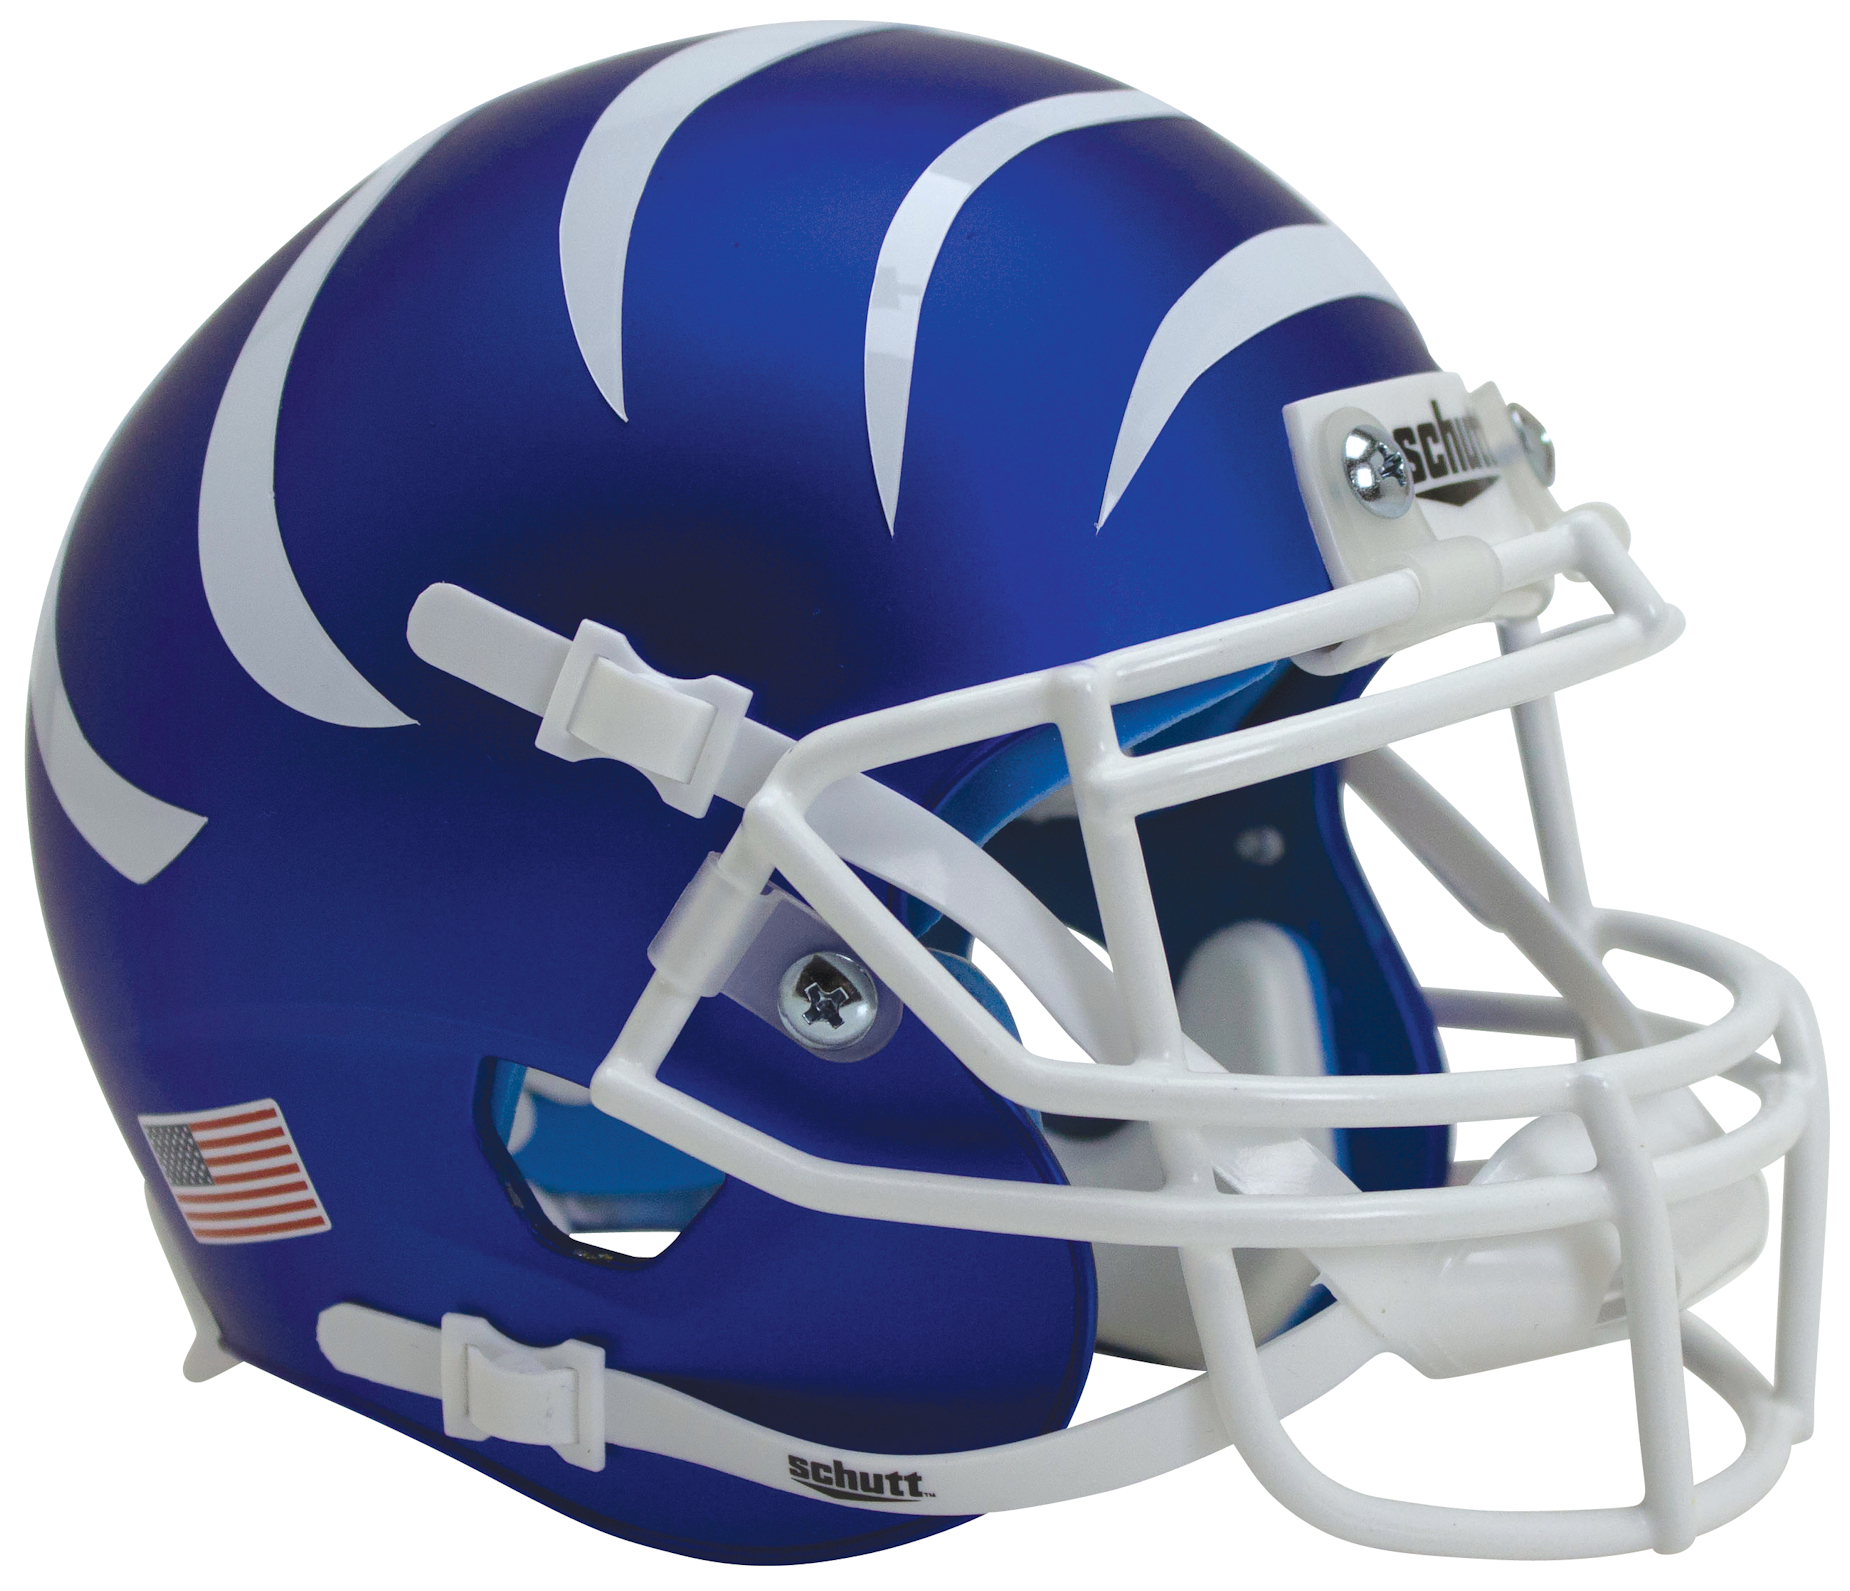 Memphis Tigers Miniature Football Helmet Desk Caddy <B>Matte Blue with Stripes</B>